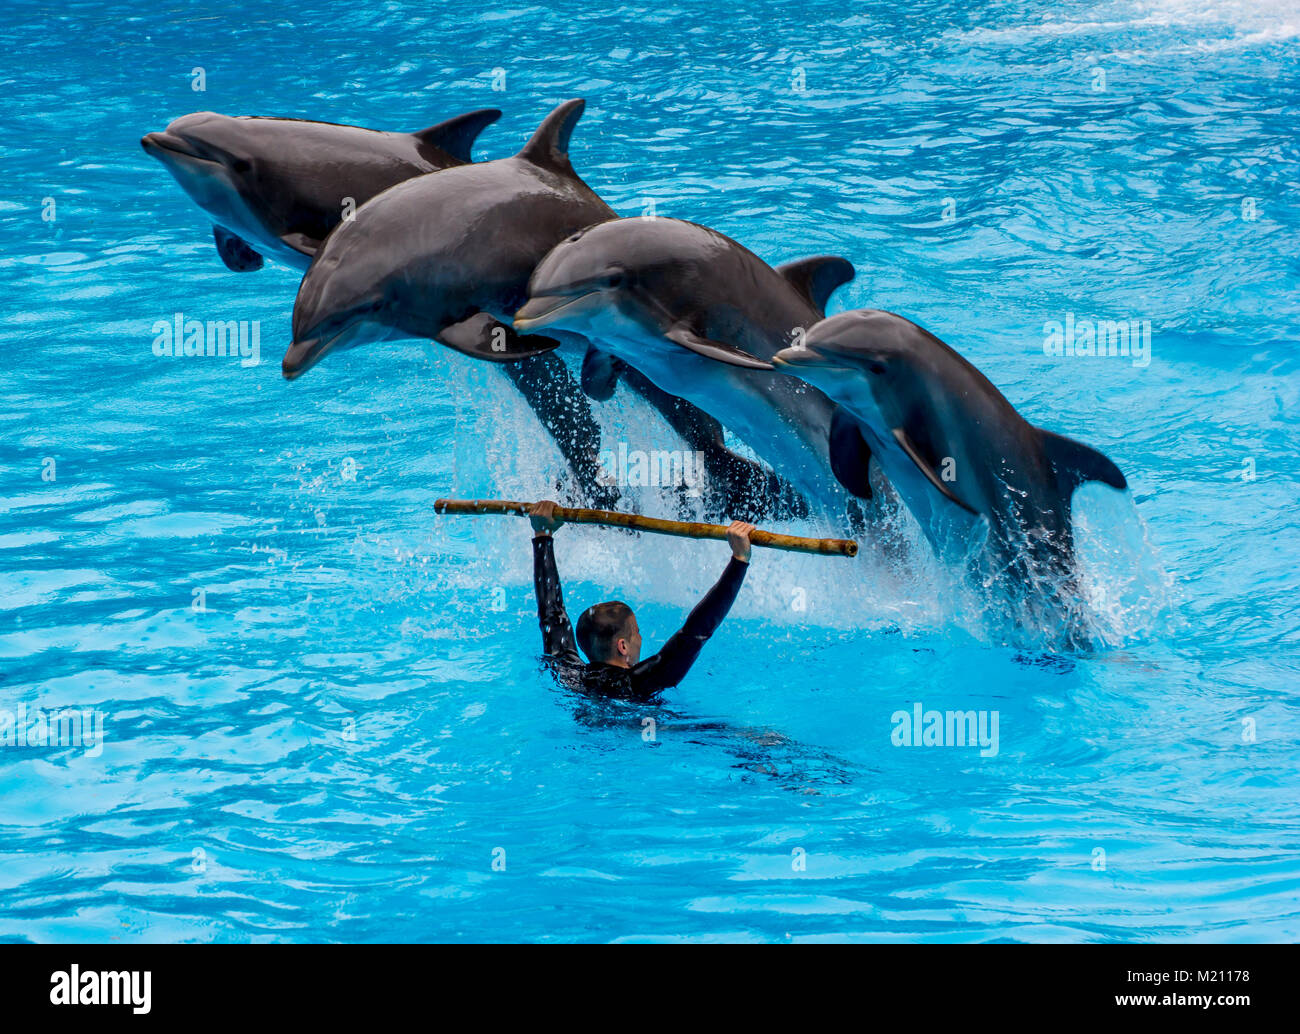 Dolphins jumping over their trainer at the Loro Parque, Tenerife 2016 - Stock Image